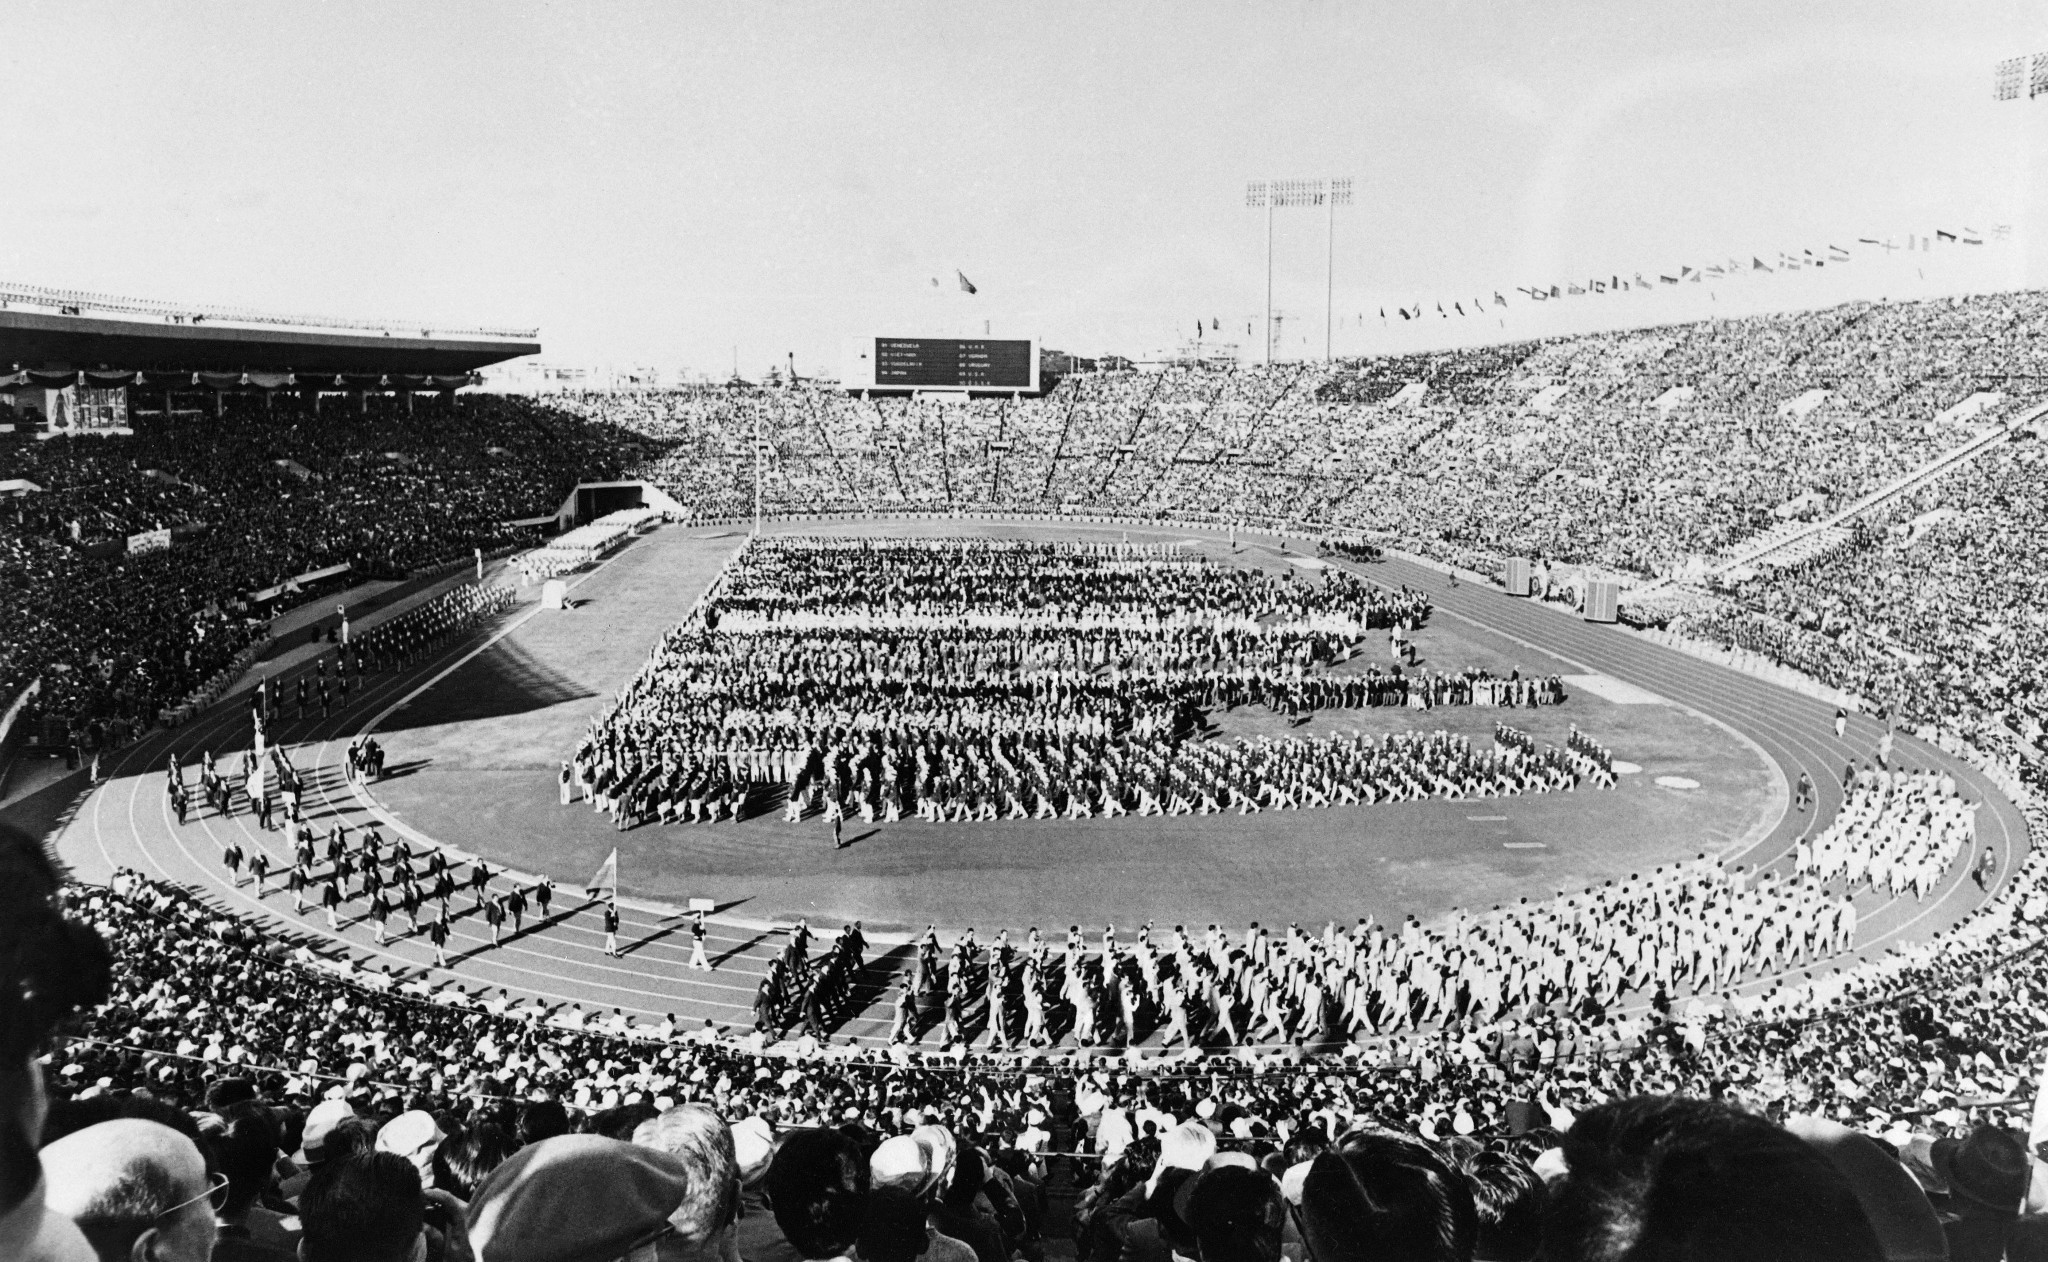 Tokyo hosted the Olympic Games 57 years before the Tokyo 2020 Games, though things have changed drastically since then ©Getty Images